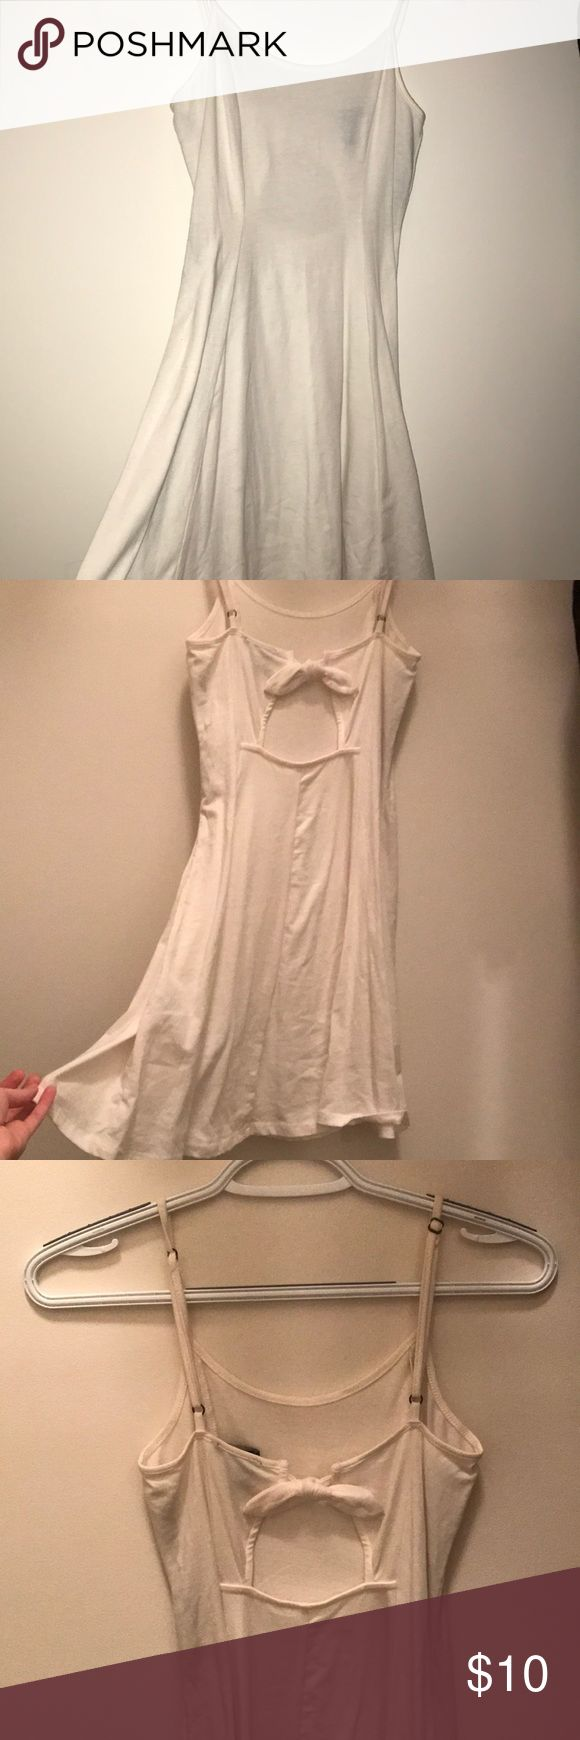 Light Cream Spaghetti Strap Summer Dress Worn once, hugs the waist and flows at the thighs. It makes the figure look so nice and gives an hourglass look. Also has an opening at the back with a bow, so cute for spring and summer. Forever 21 Dresses Mini